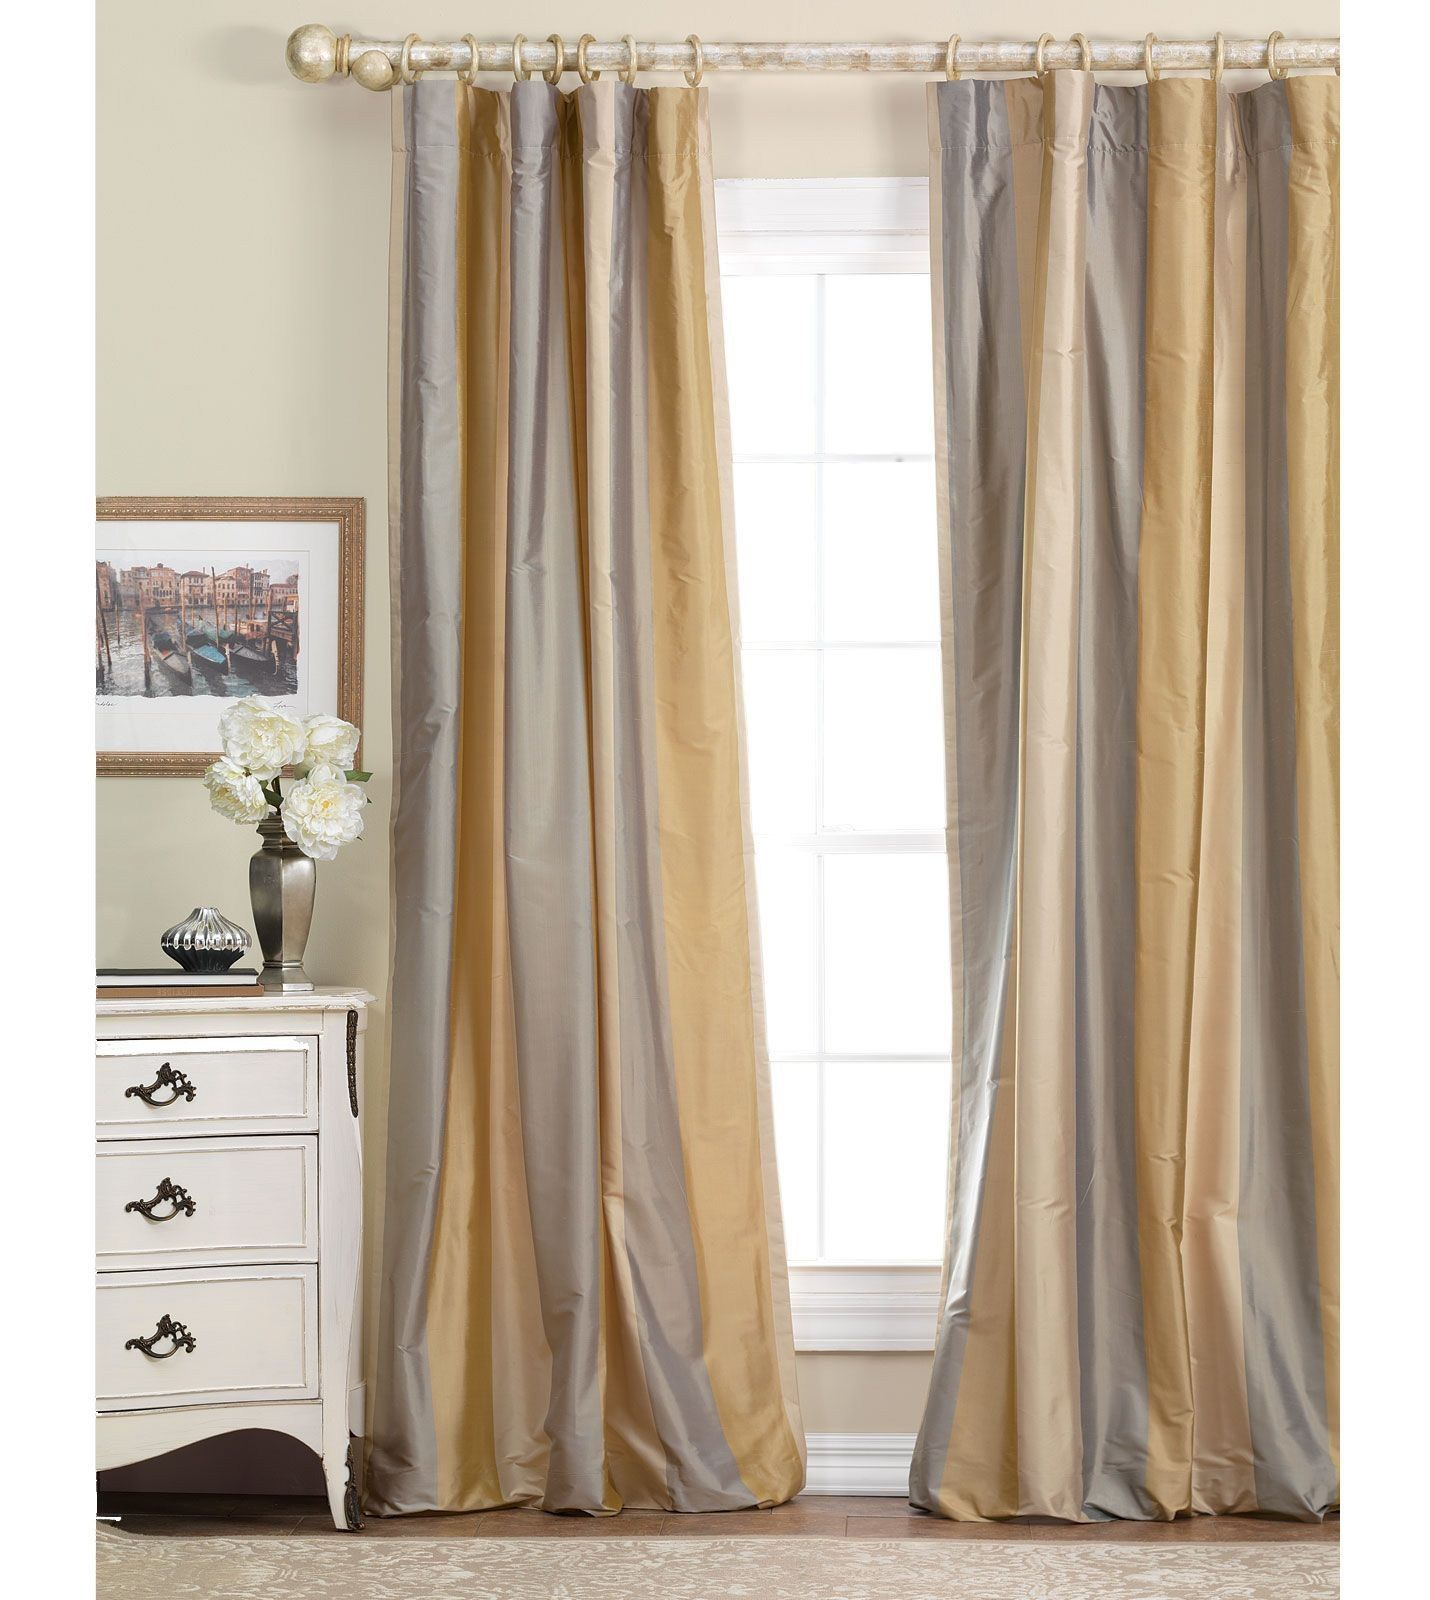 Best Furniture Ideas Ever Gold Curtains Bedroom Luxurious Bedrooms Luxury Bedroom Furniture